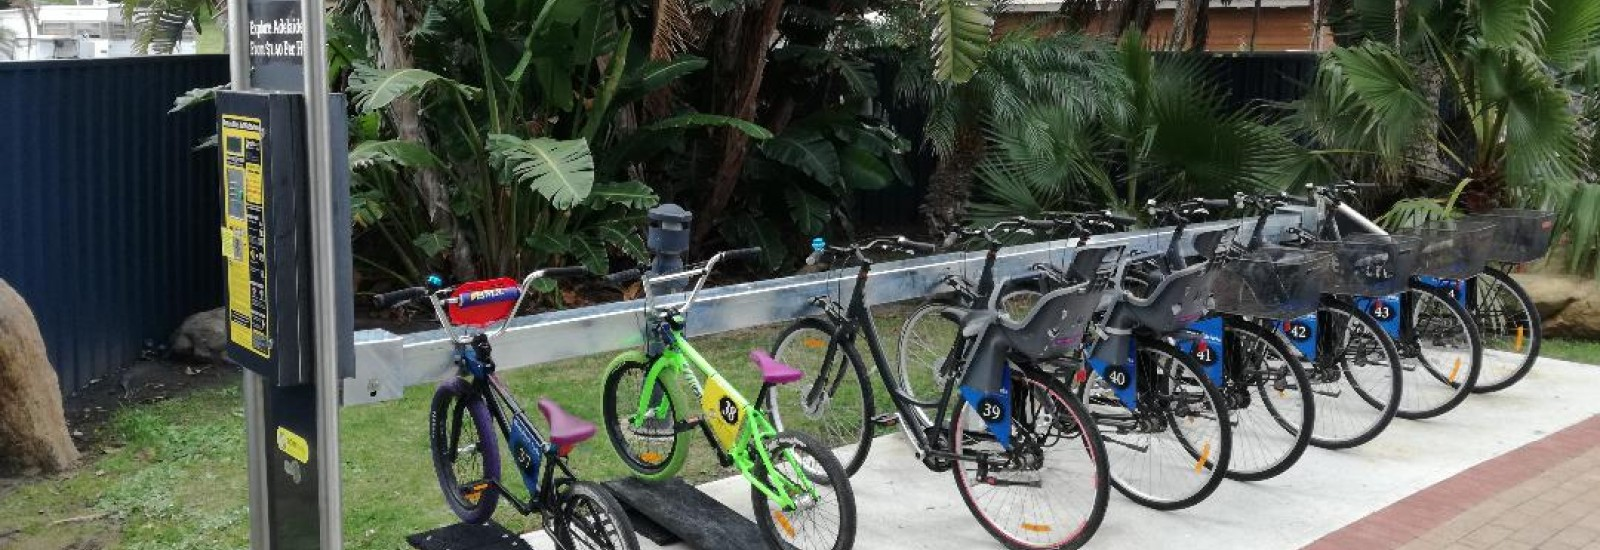 west beach caravan park bike hire